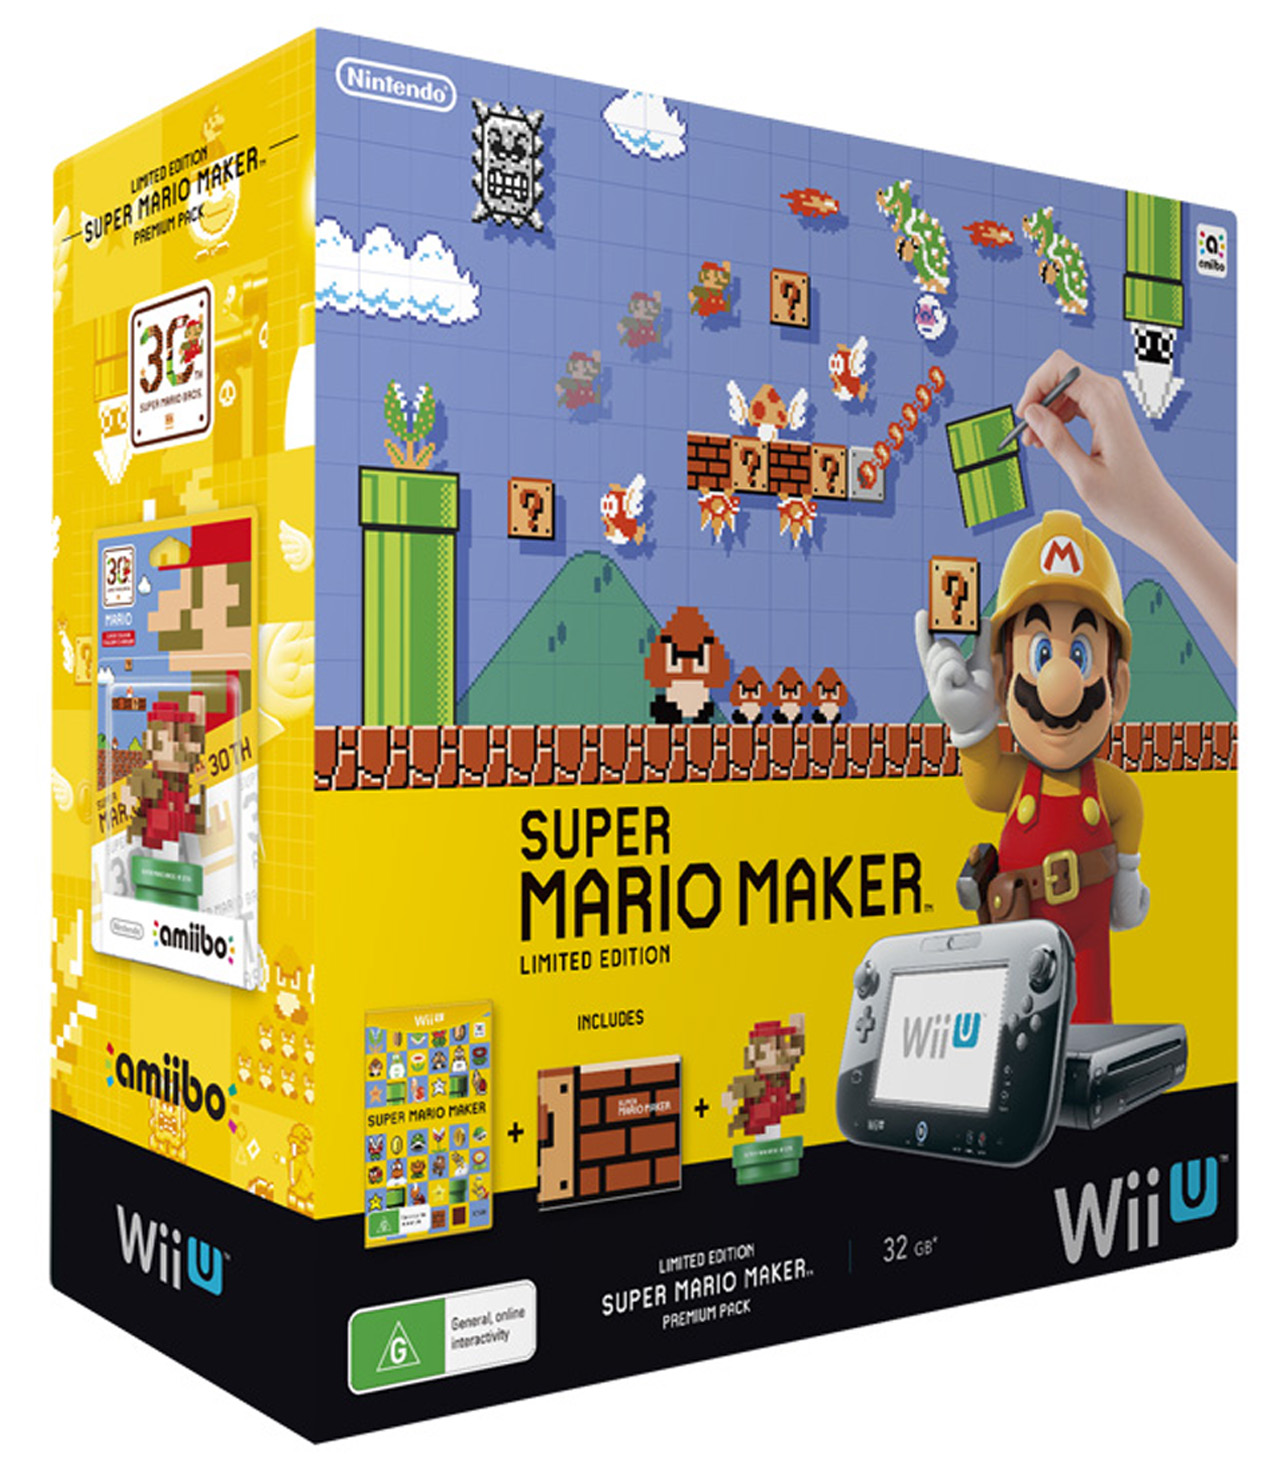 Super Mario Maker Wii U Premium Pack